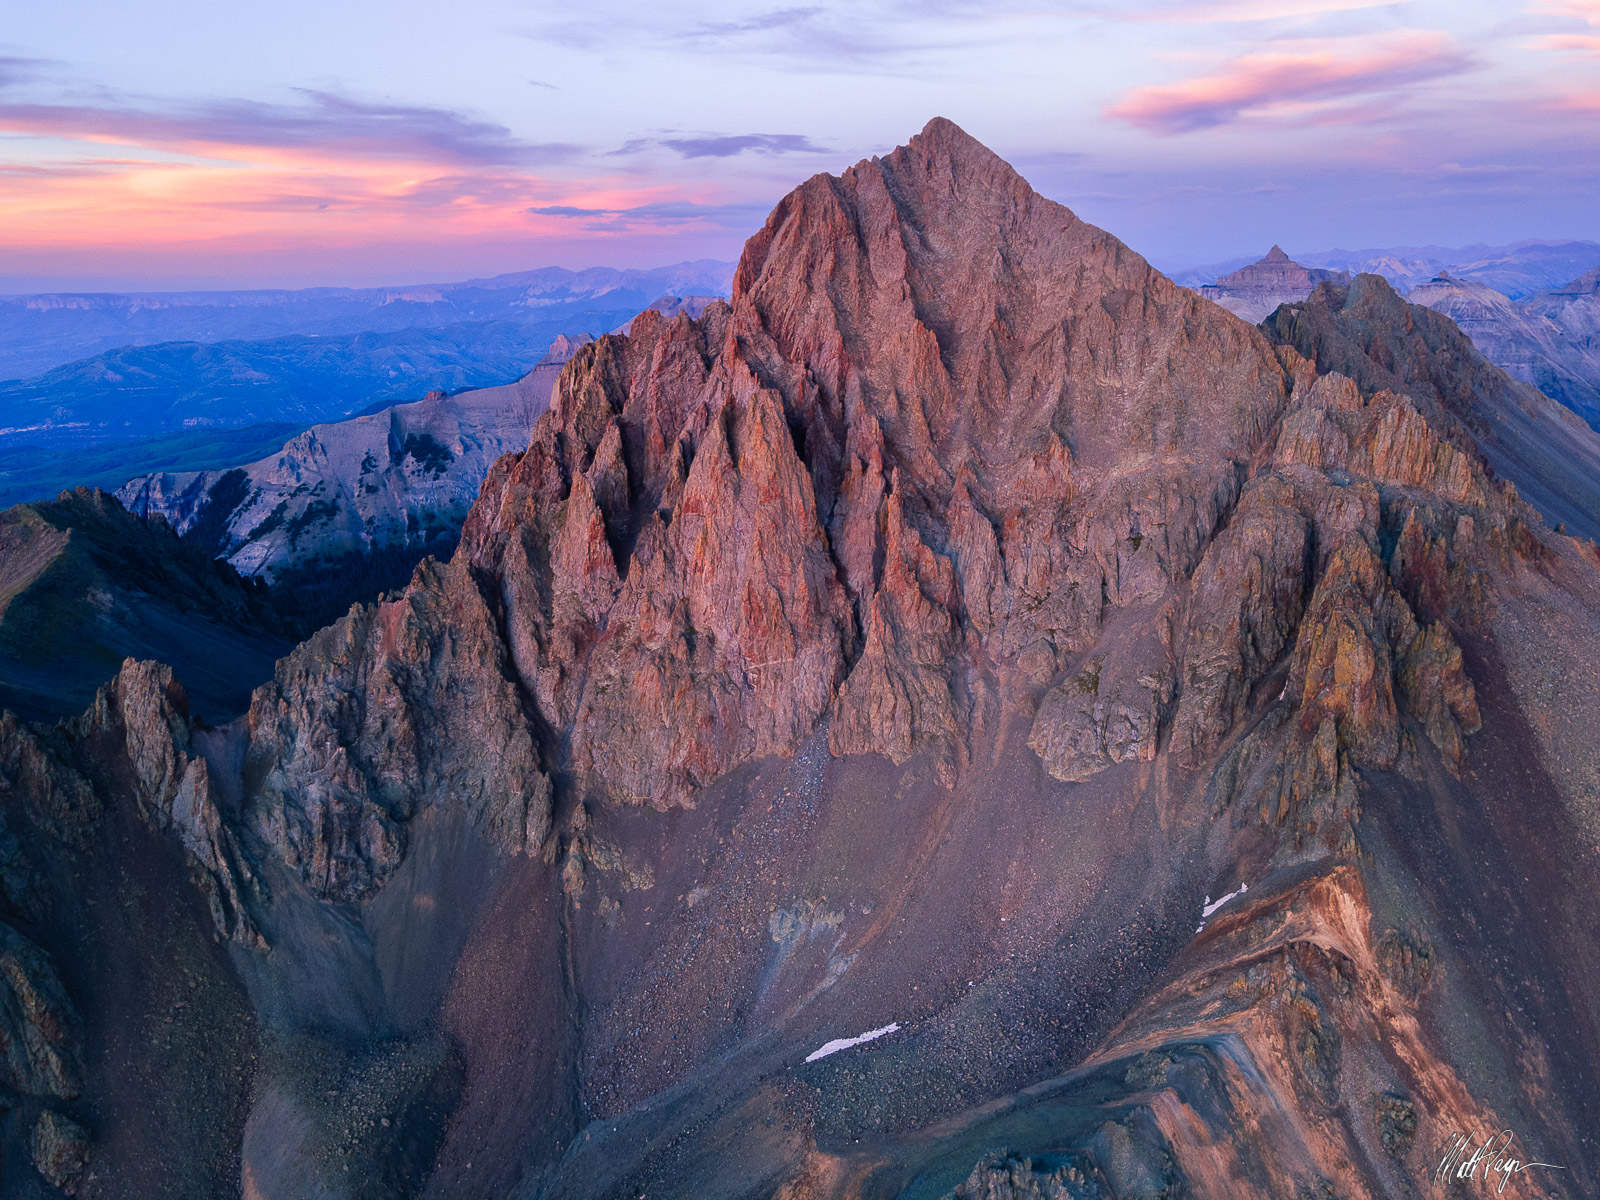 Mount Sneffels, San Juan Mountains, Colorado, rare, Blue Lakes, Ouray, Ridgway, 14er, Sunset, Landscape Photography, photo